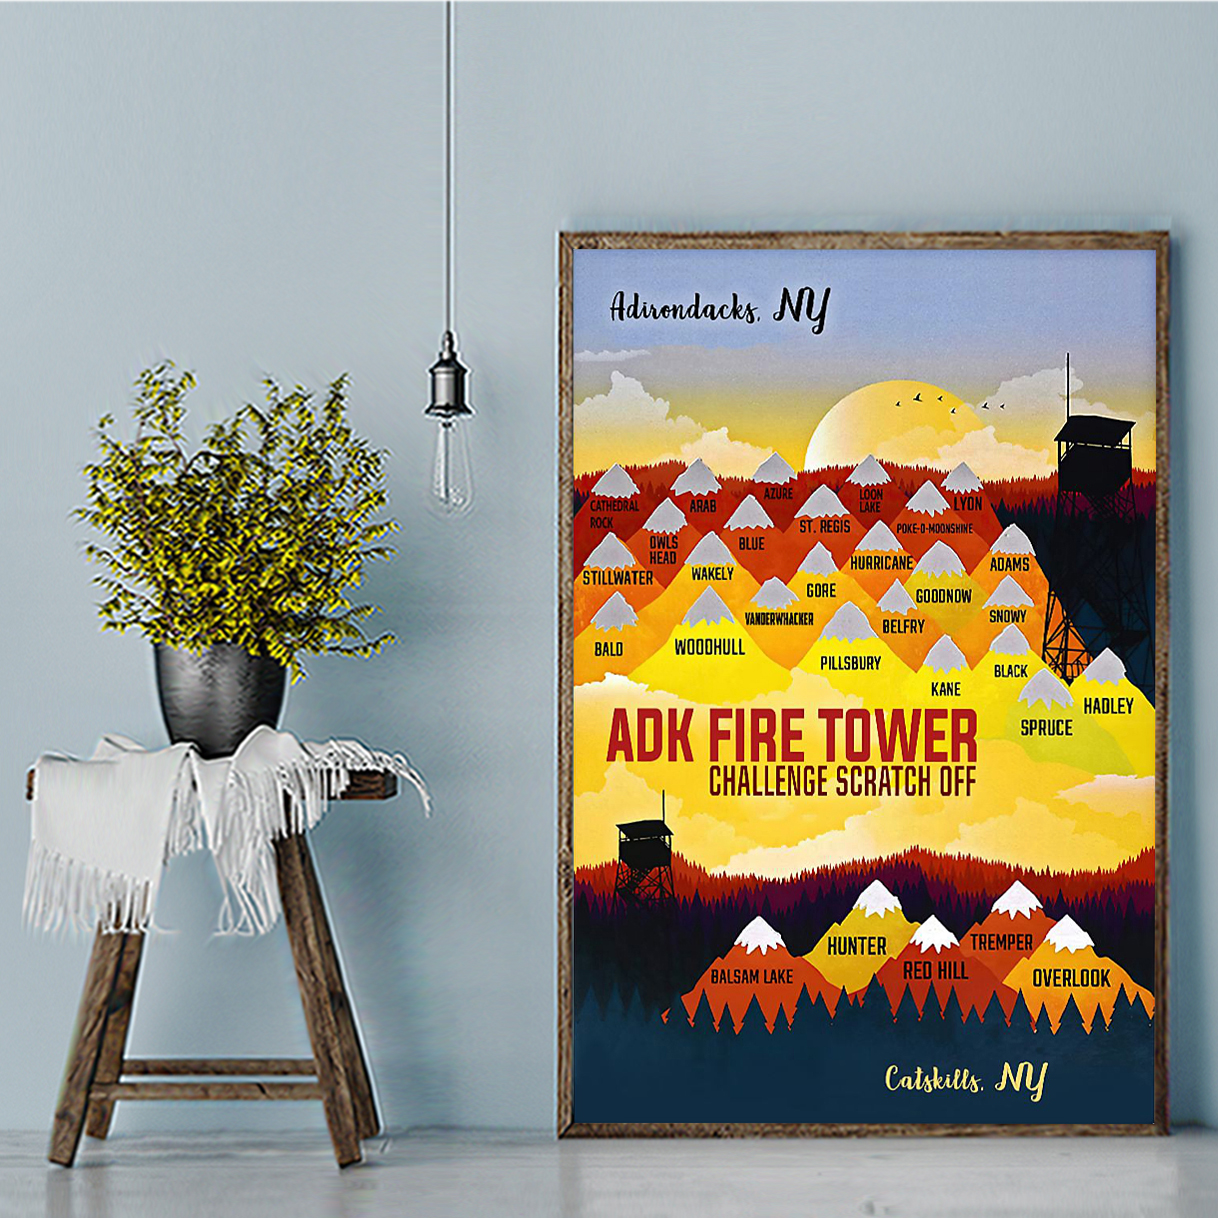 ADK fire tower challenge scratch off poster A2